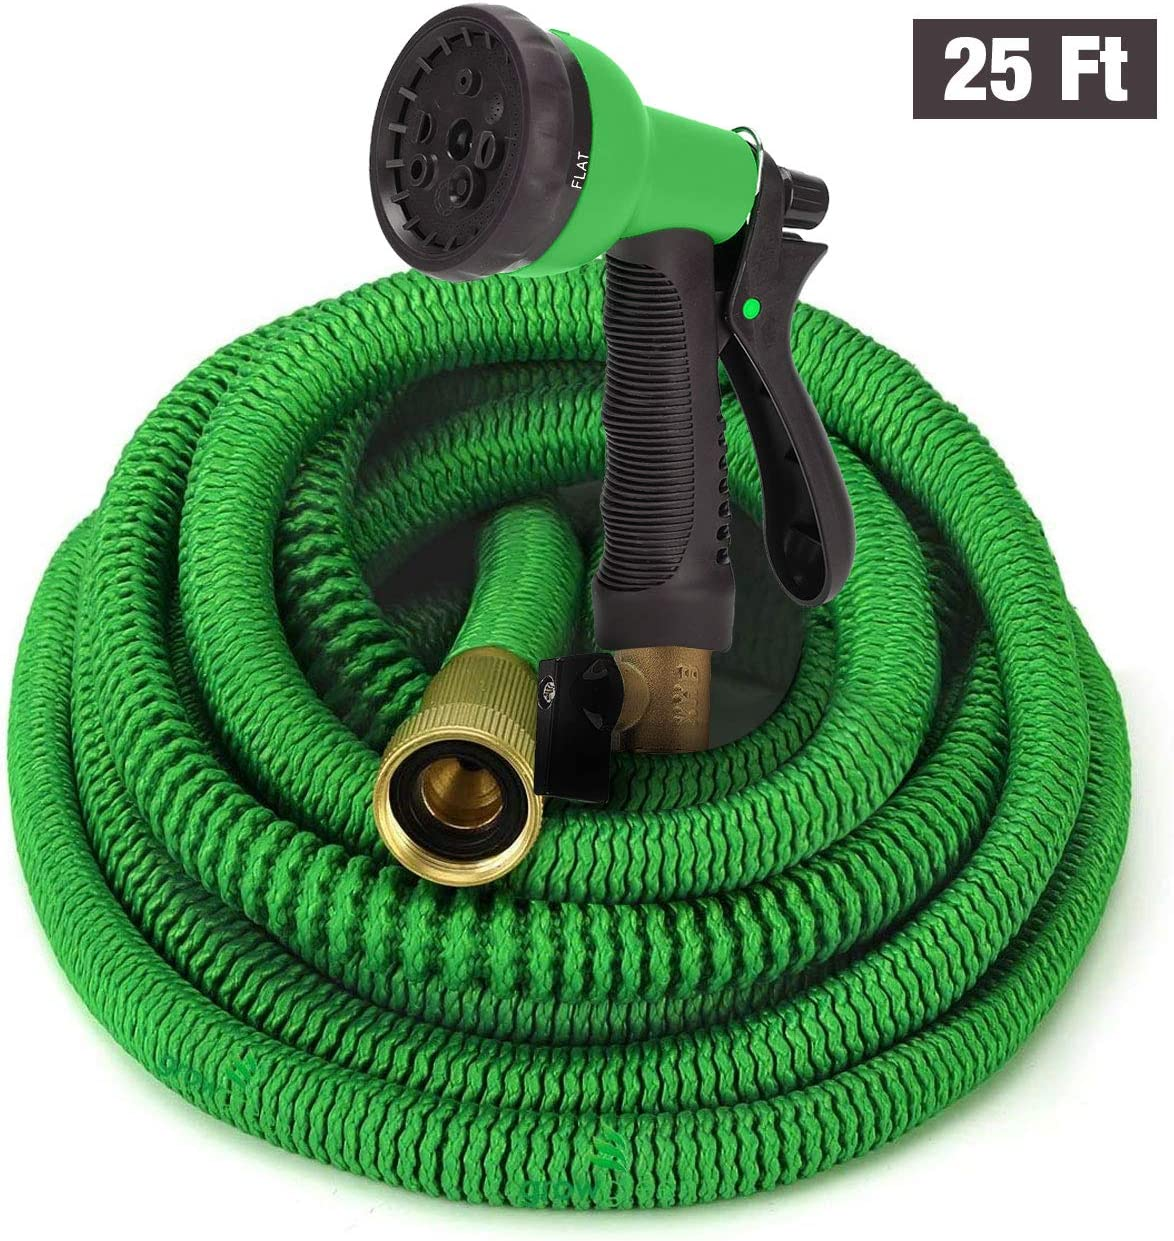 GrowGreen Garden Hose, Expandable Garden Hoses, Water Hose with High Pressure Hose Spray Nozzle, Flexible Garden Hose with All Brass Connectors, Leak Proof, Durable, Heavy Duty Material (25 Feet)